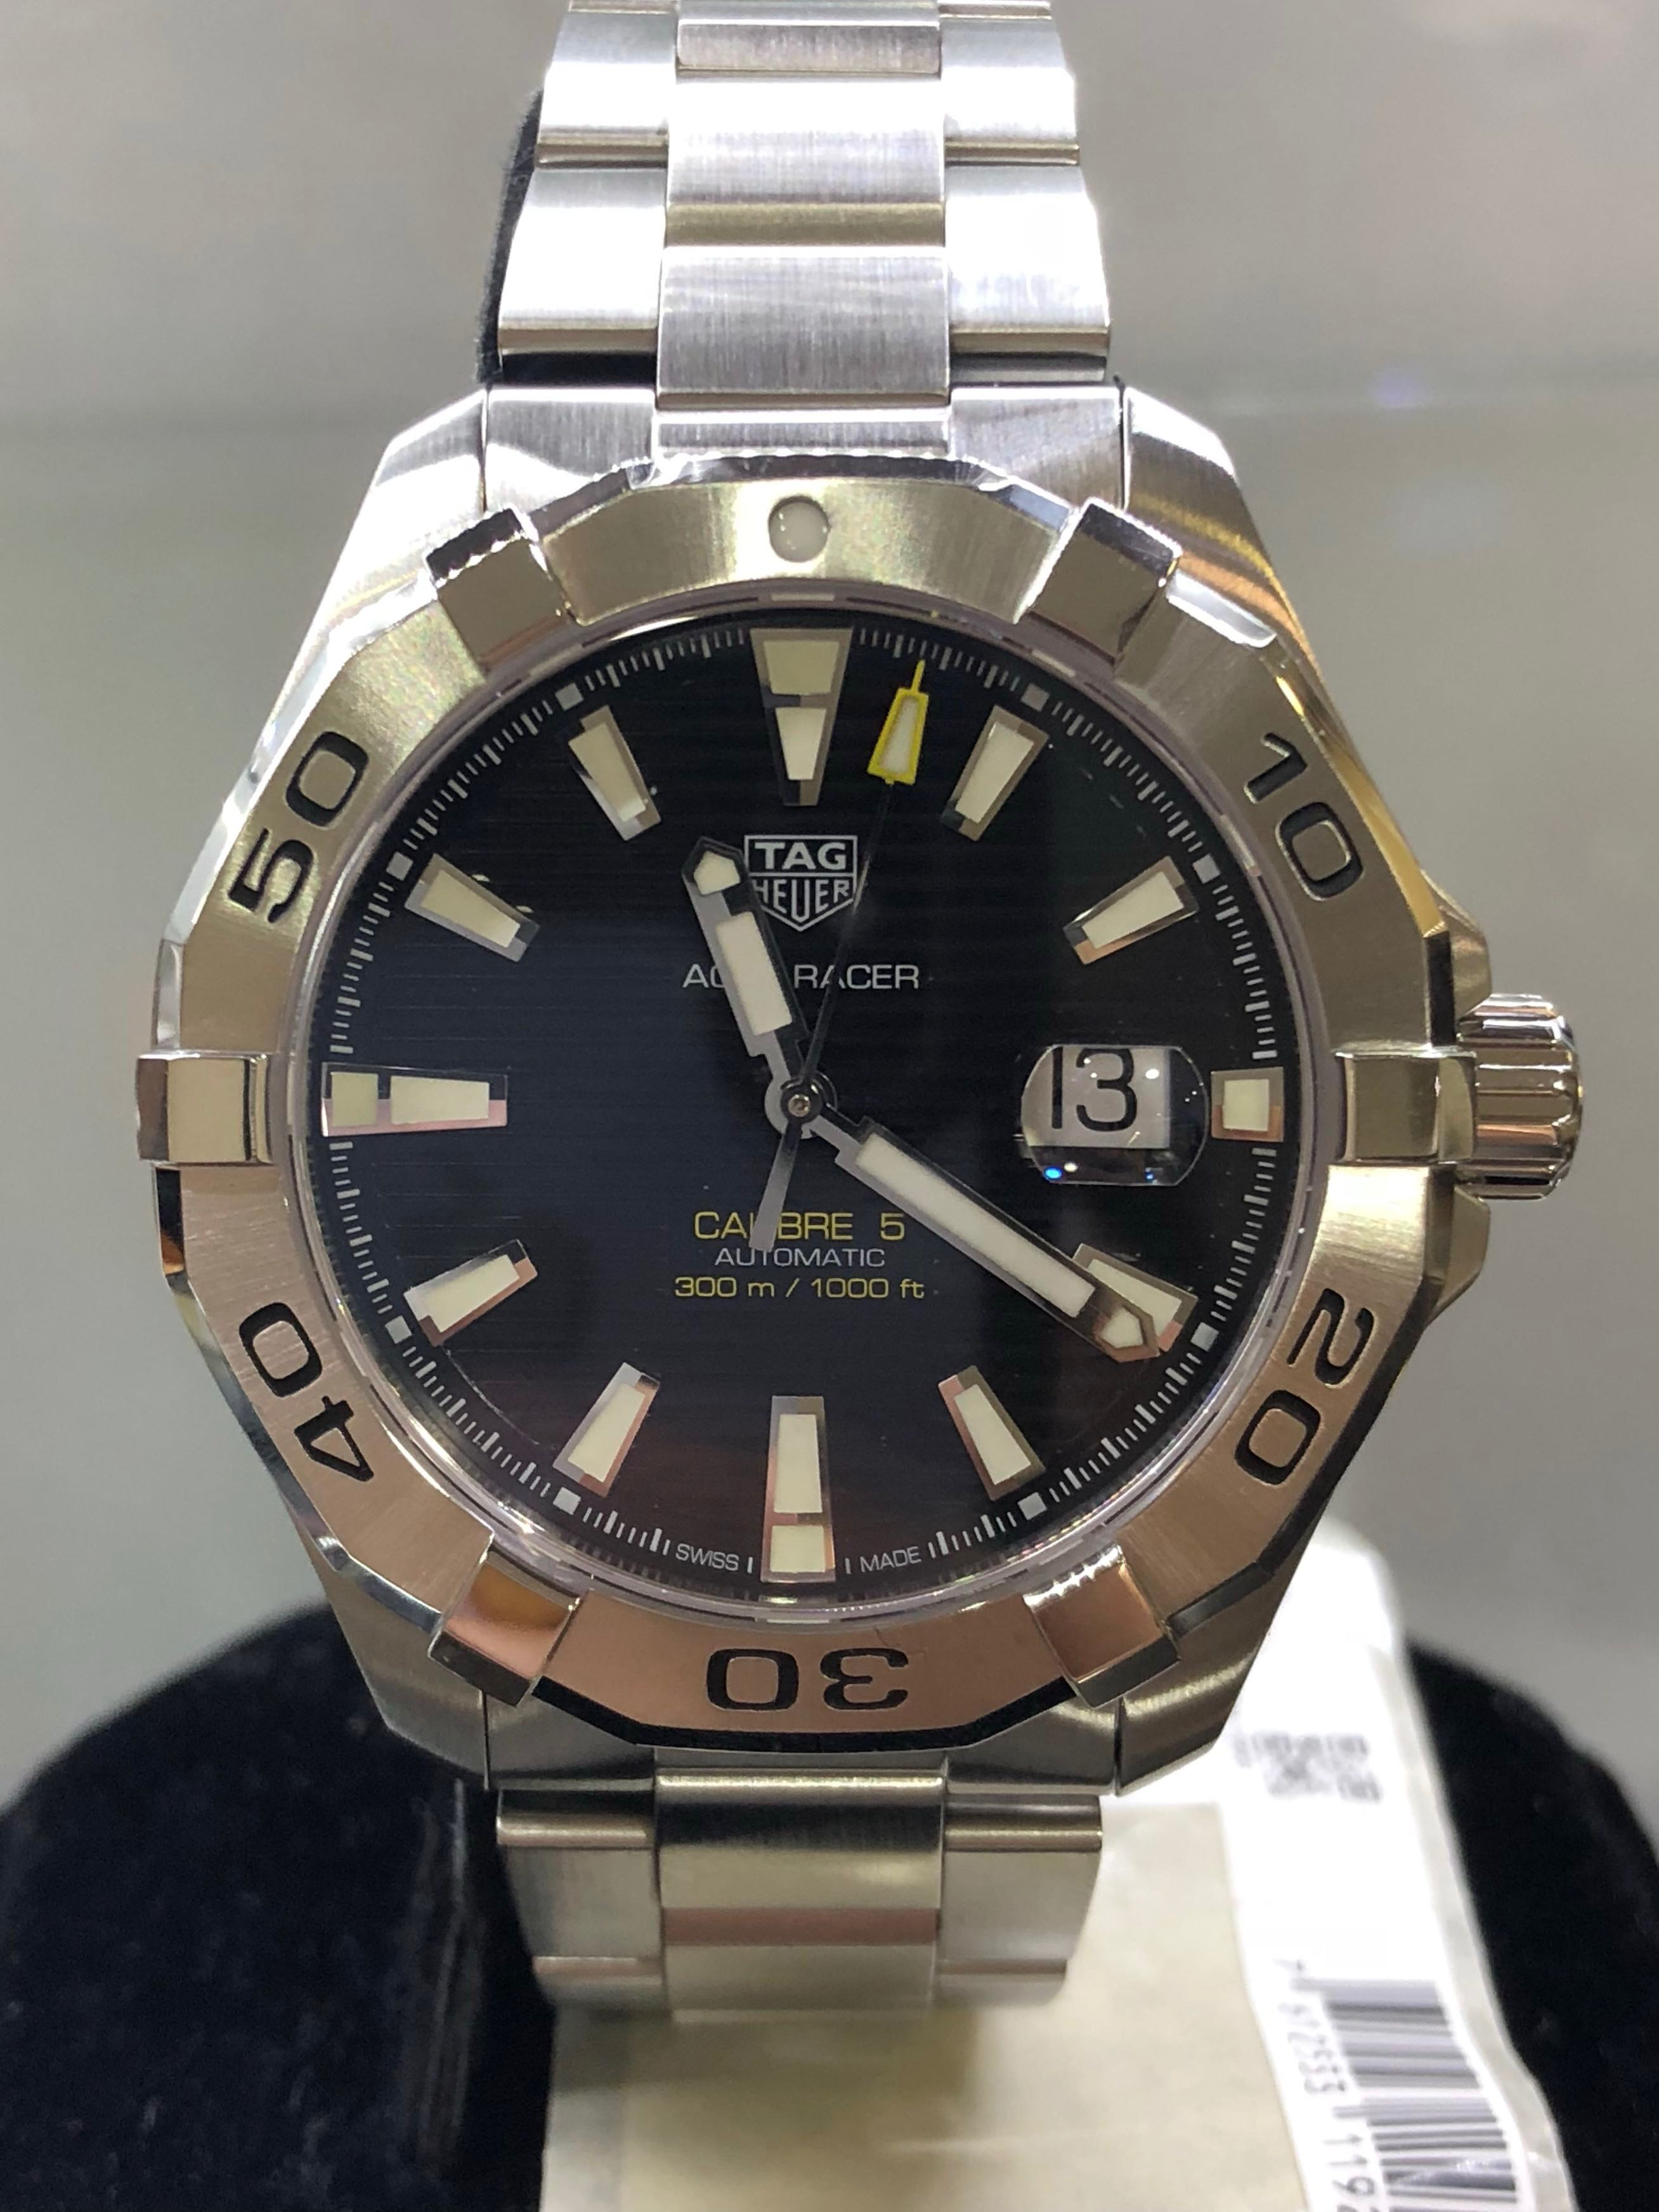 8a53f526a2e Tag Heuer Aquaracer Calibre 5 Automatic, Luxury, Watches on Carousell